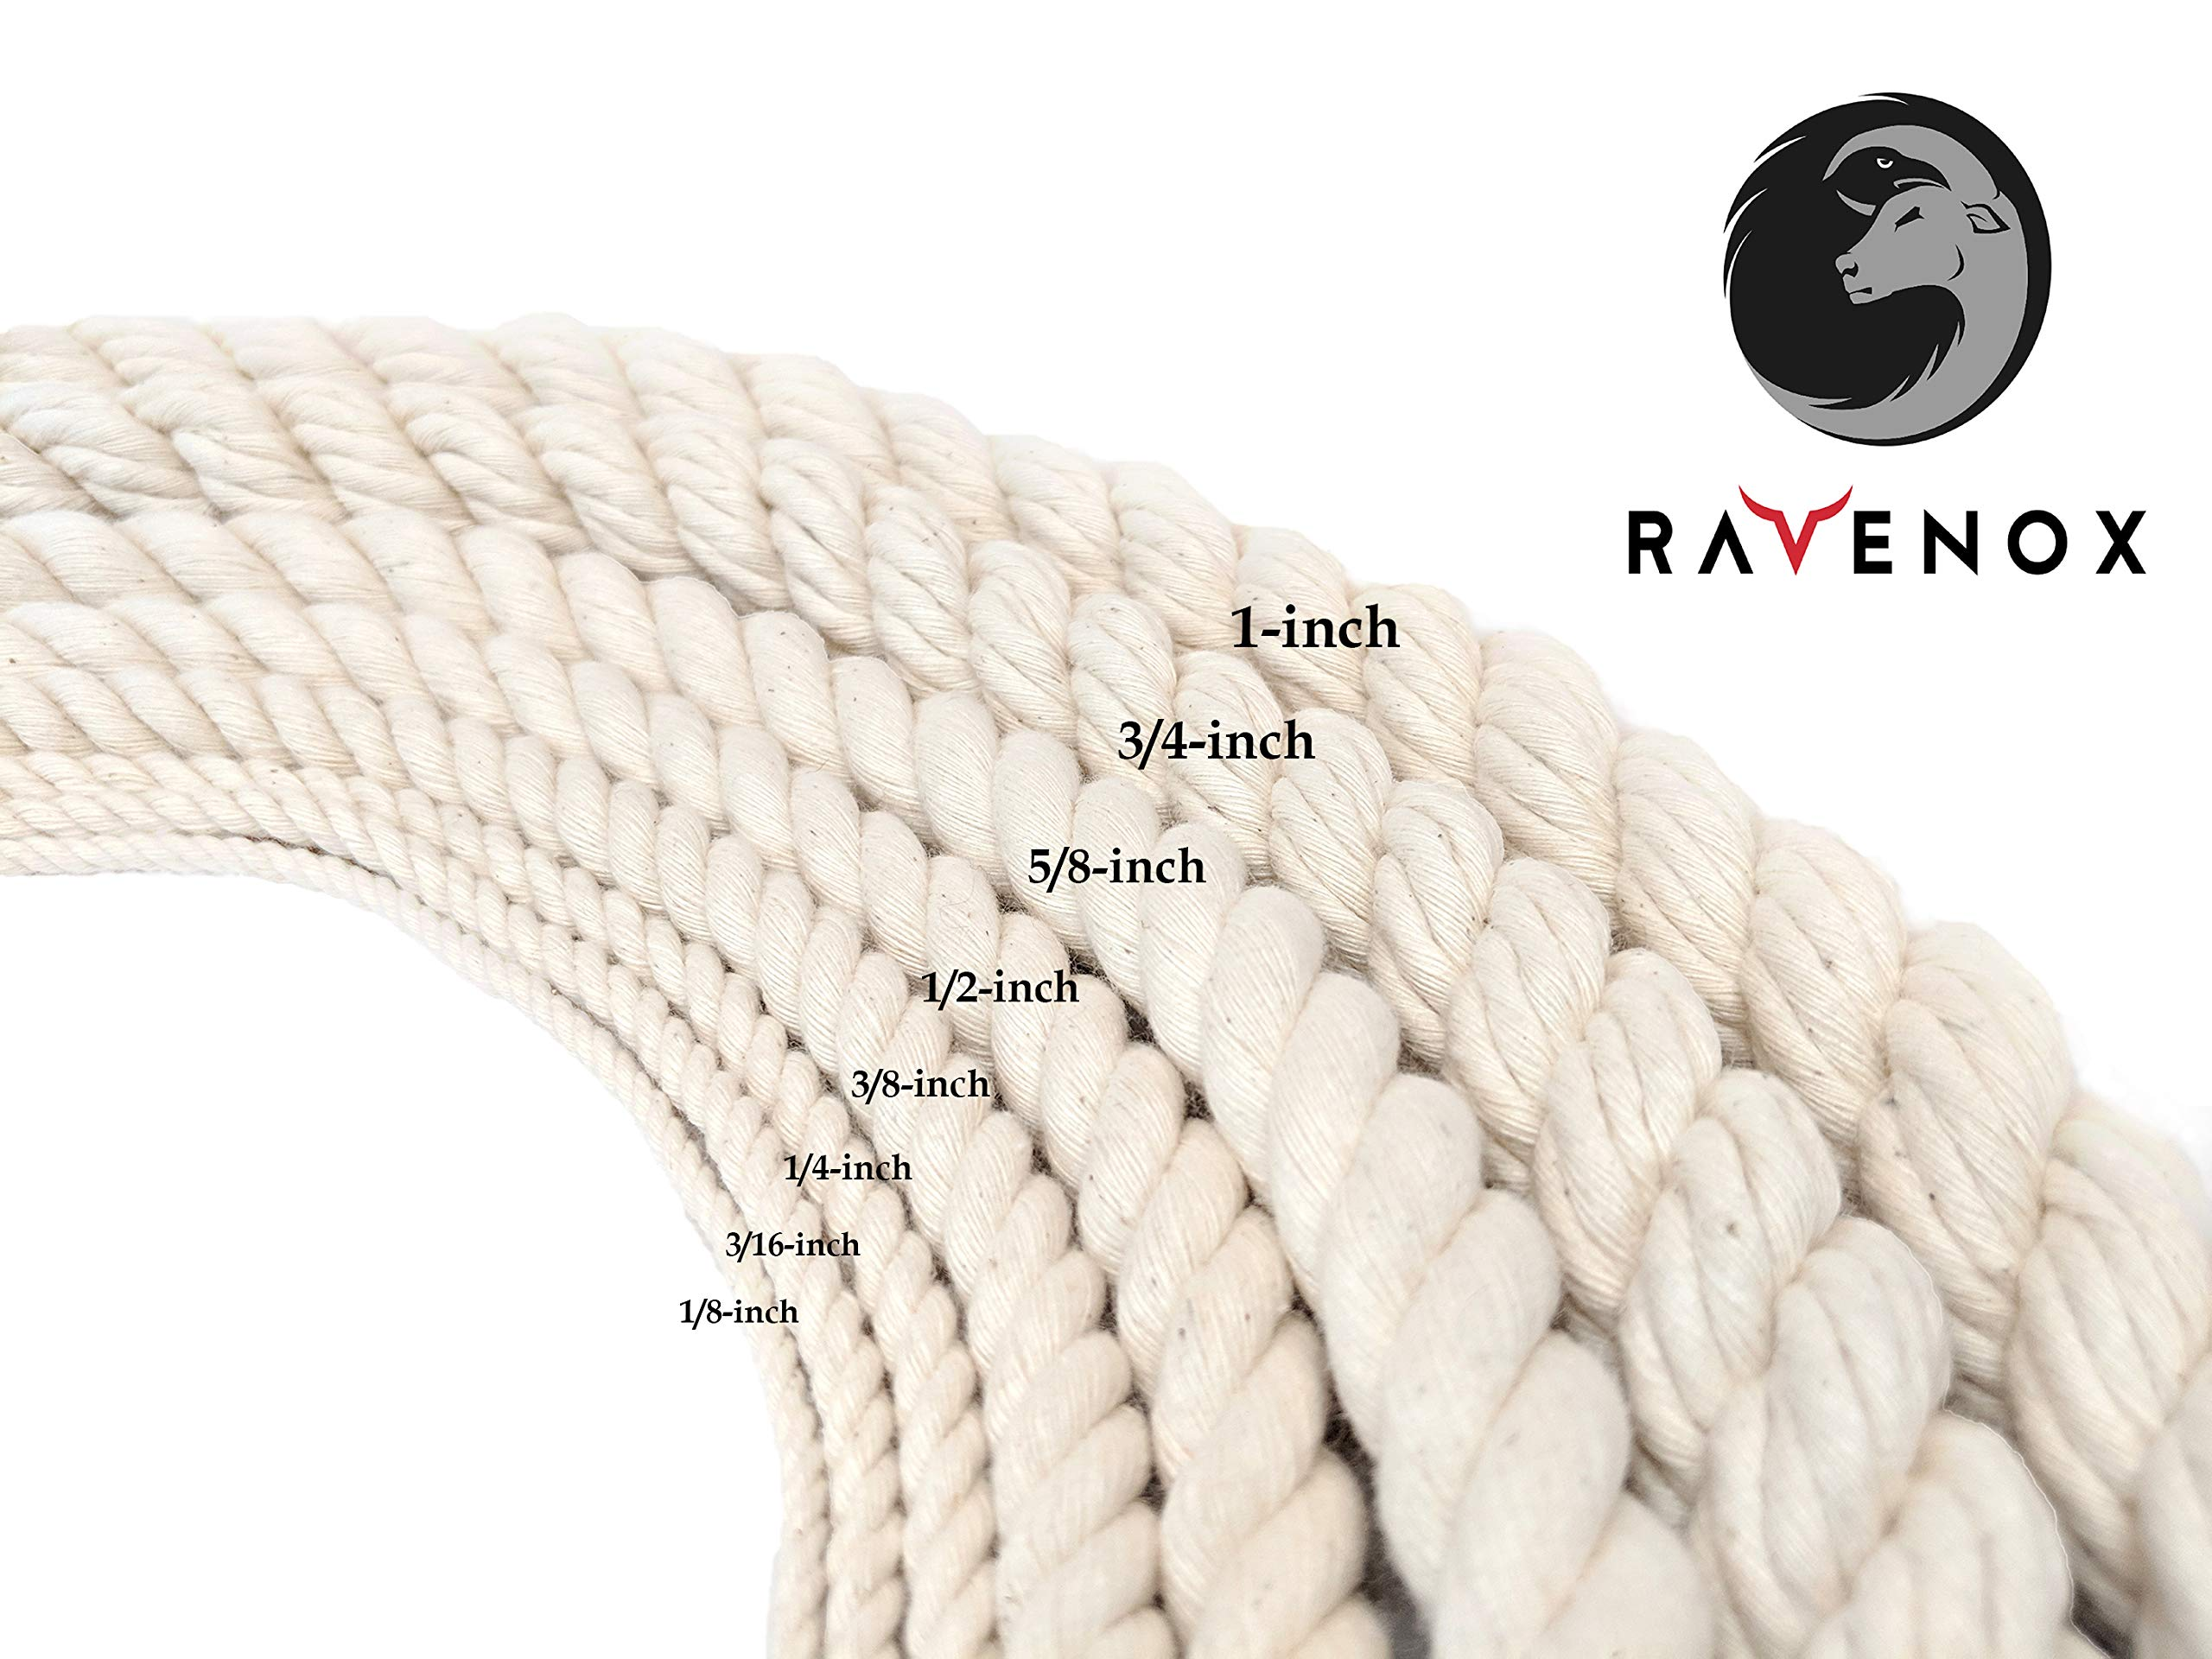 Ravenox 100% Cotton Twisted Rope | (White)(3/8 in x 1000 ft) |USA Made Natural Cord | Baker & Butchers Twine, Macramé, Knotting, Crafts, Pet Toys by Ravenox (Image #3)